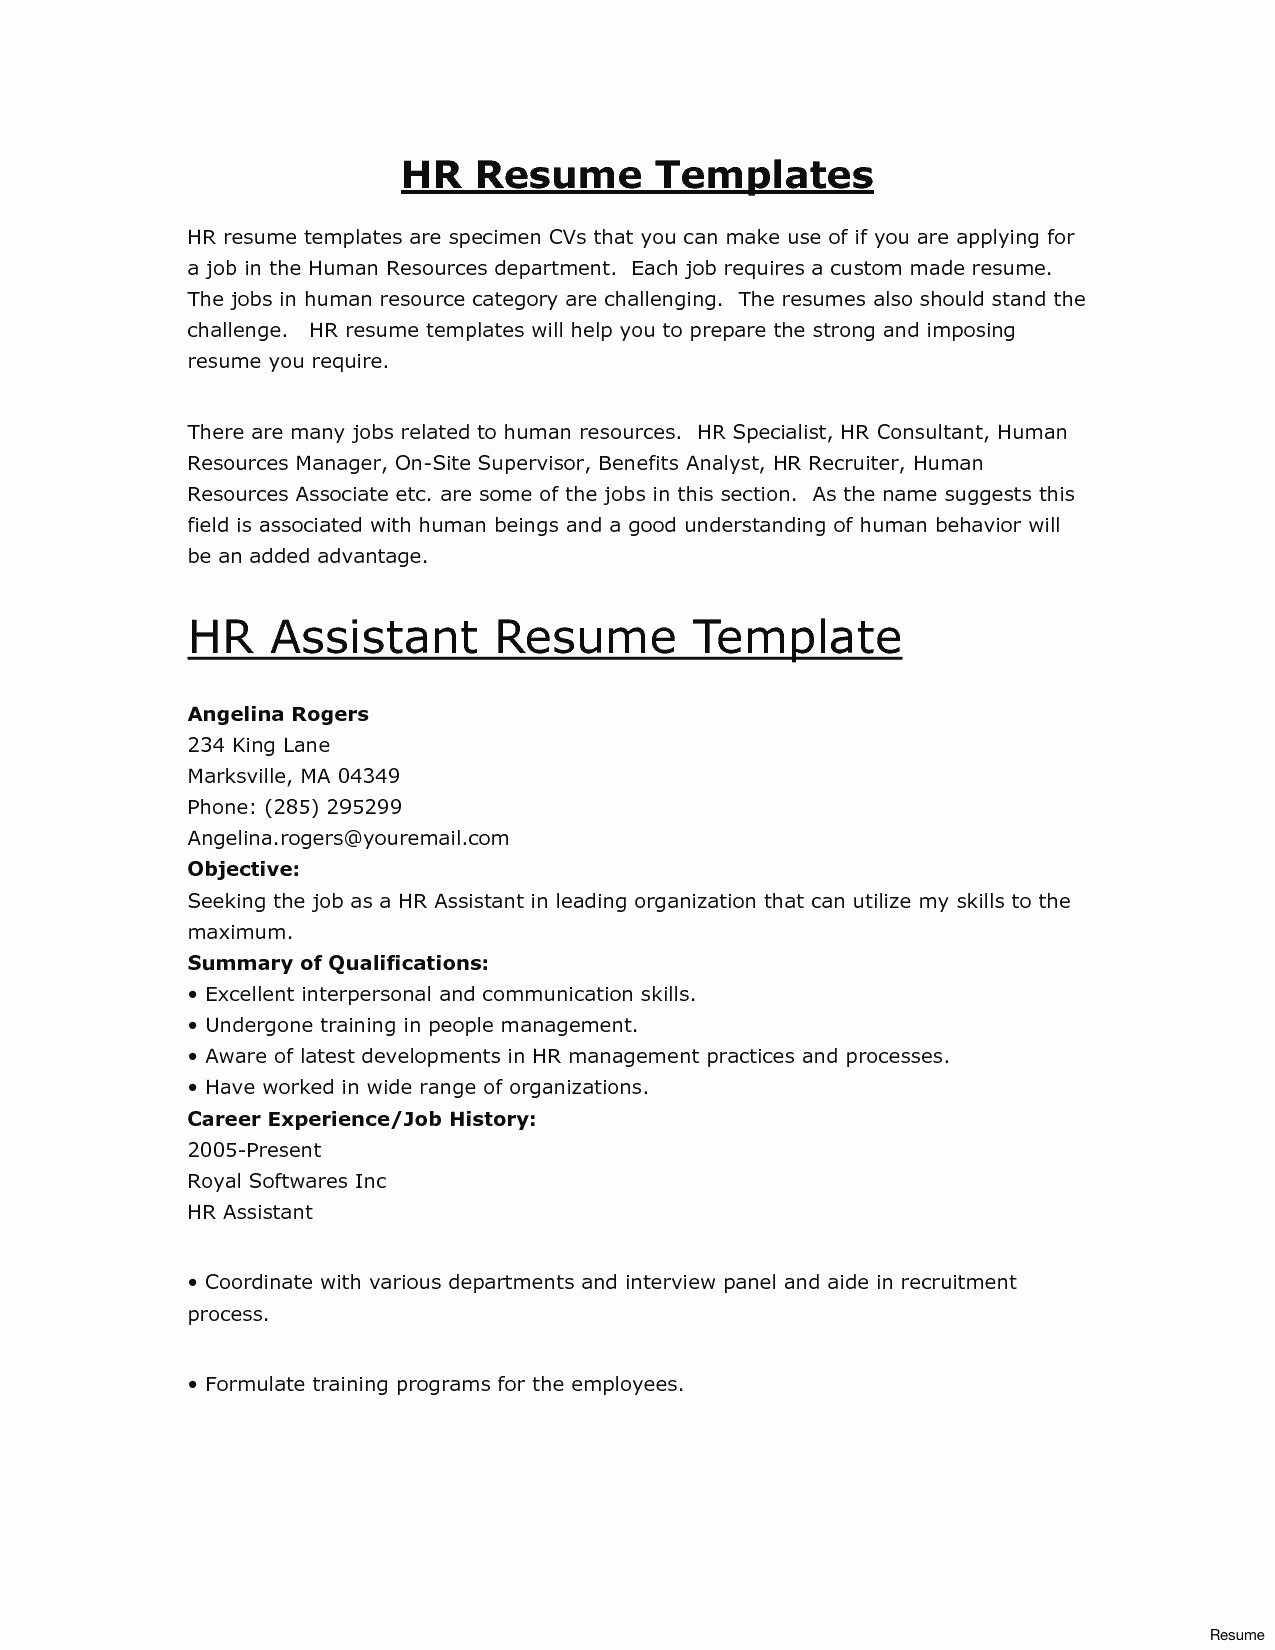 Cover Letter Template for Administrative assistant Job - Executive assistant Sample Resume Inspirational Executive assistant